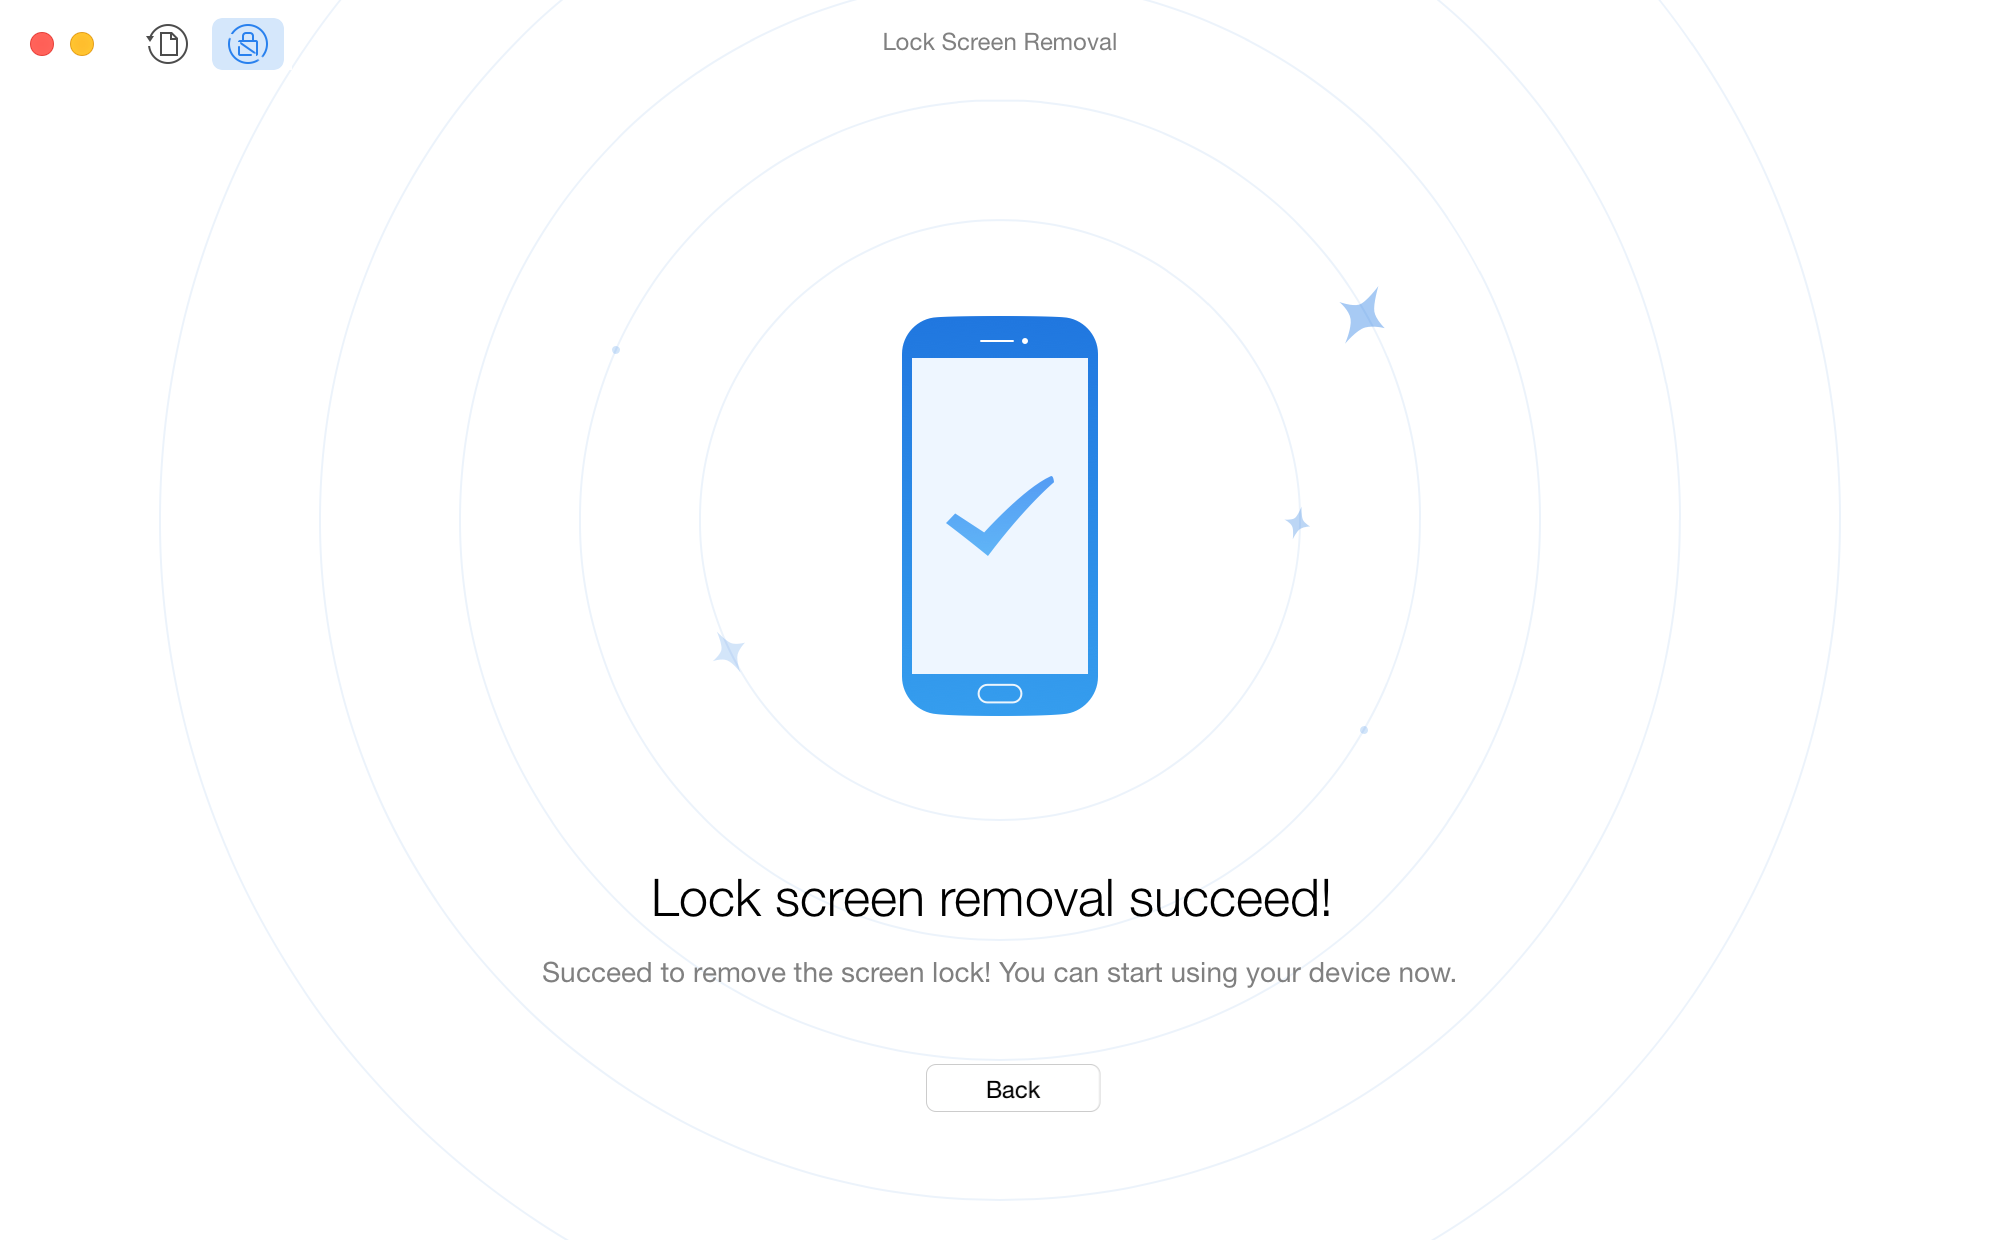 How to Remove Screen Lock on Android - Step 3